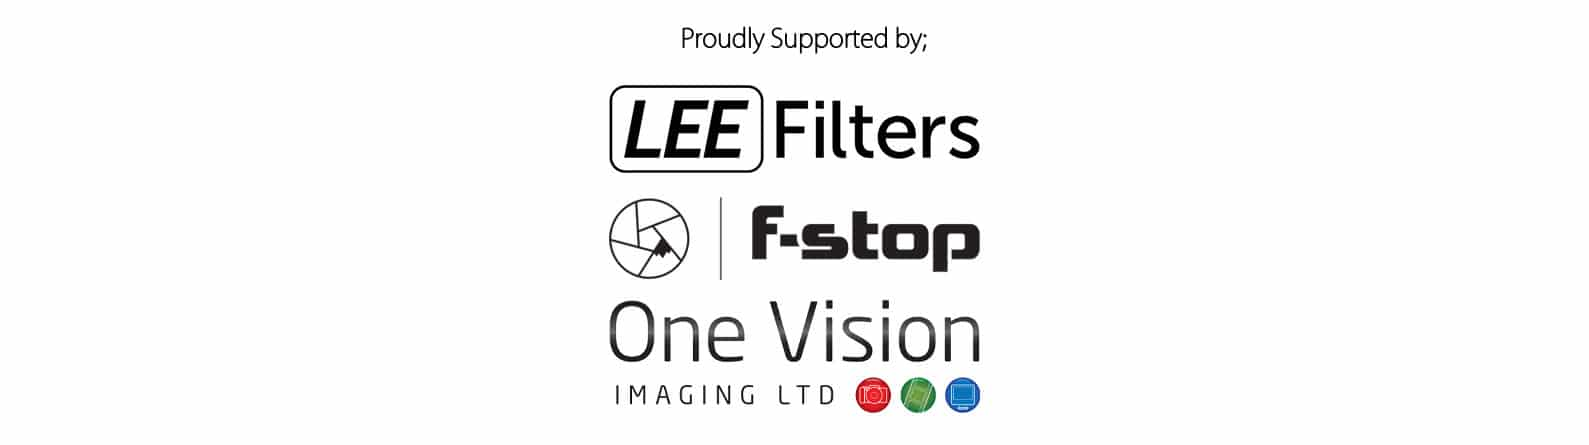 Lee Filters ambassador